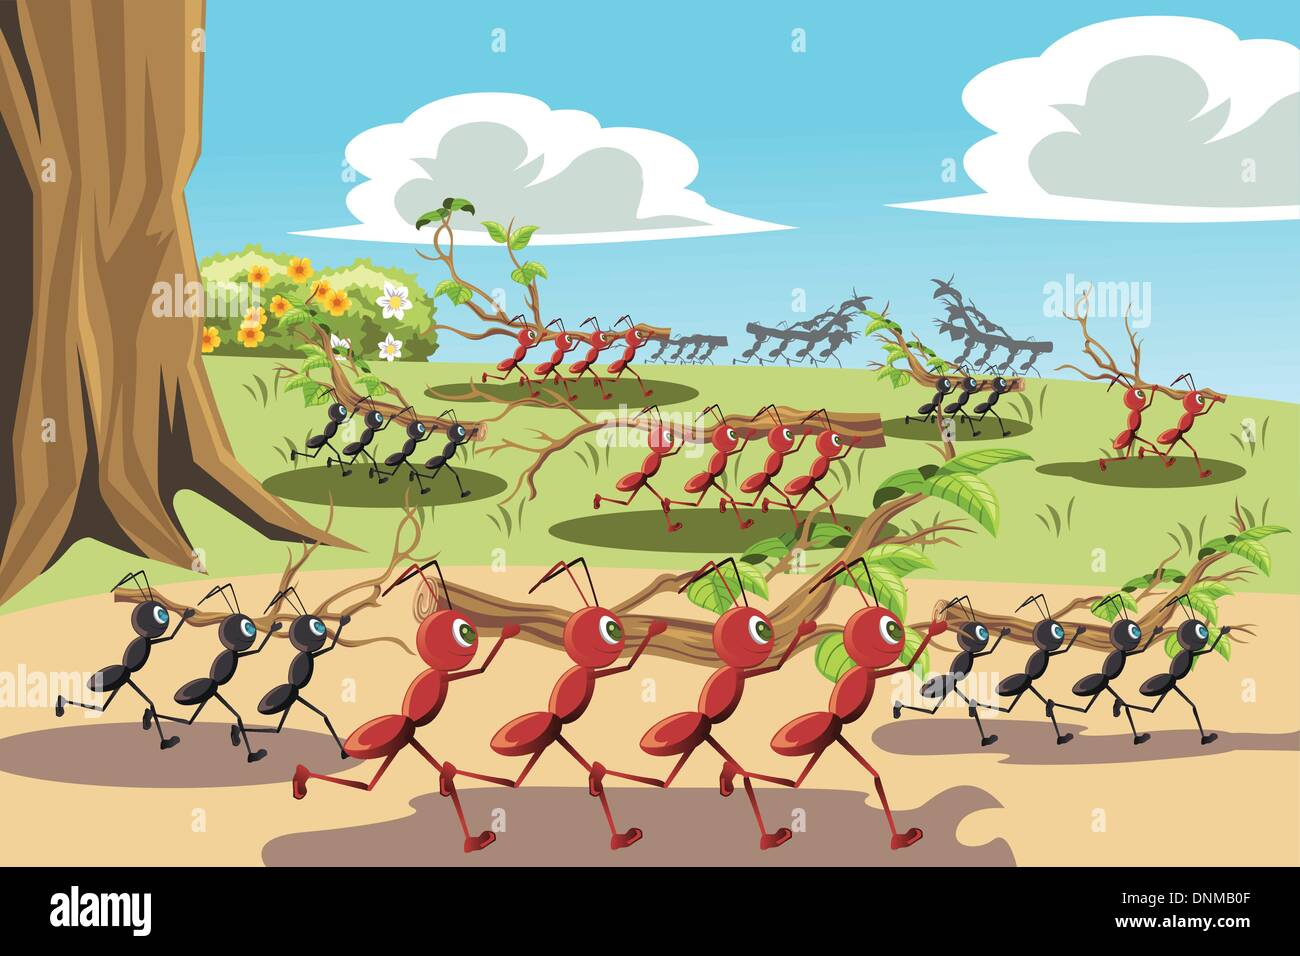 A vector illustration of a colony of ants working together, can be used for teamwork concept - Stock Vector